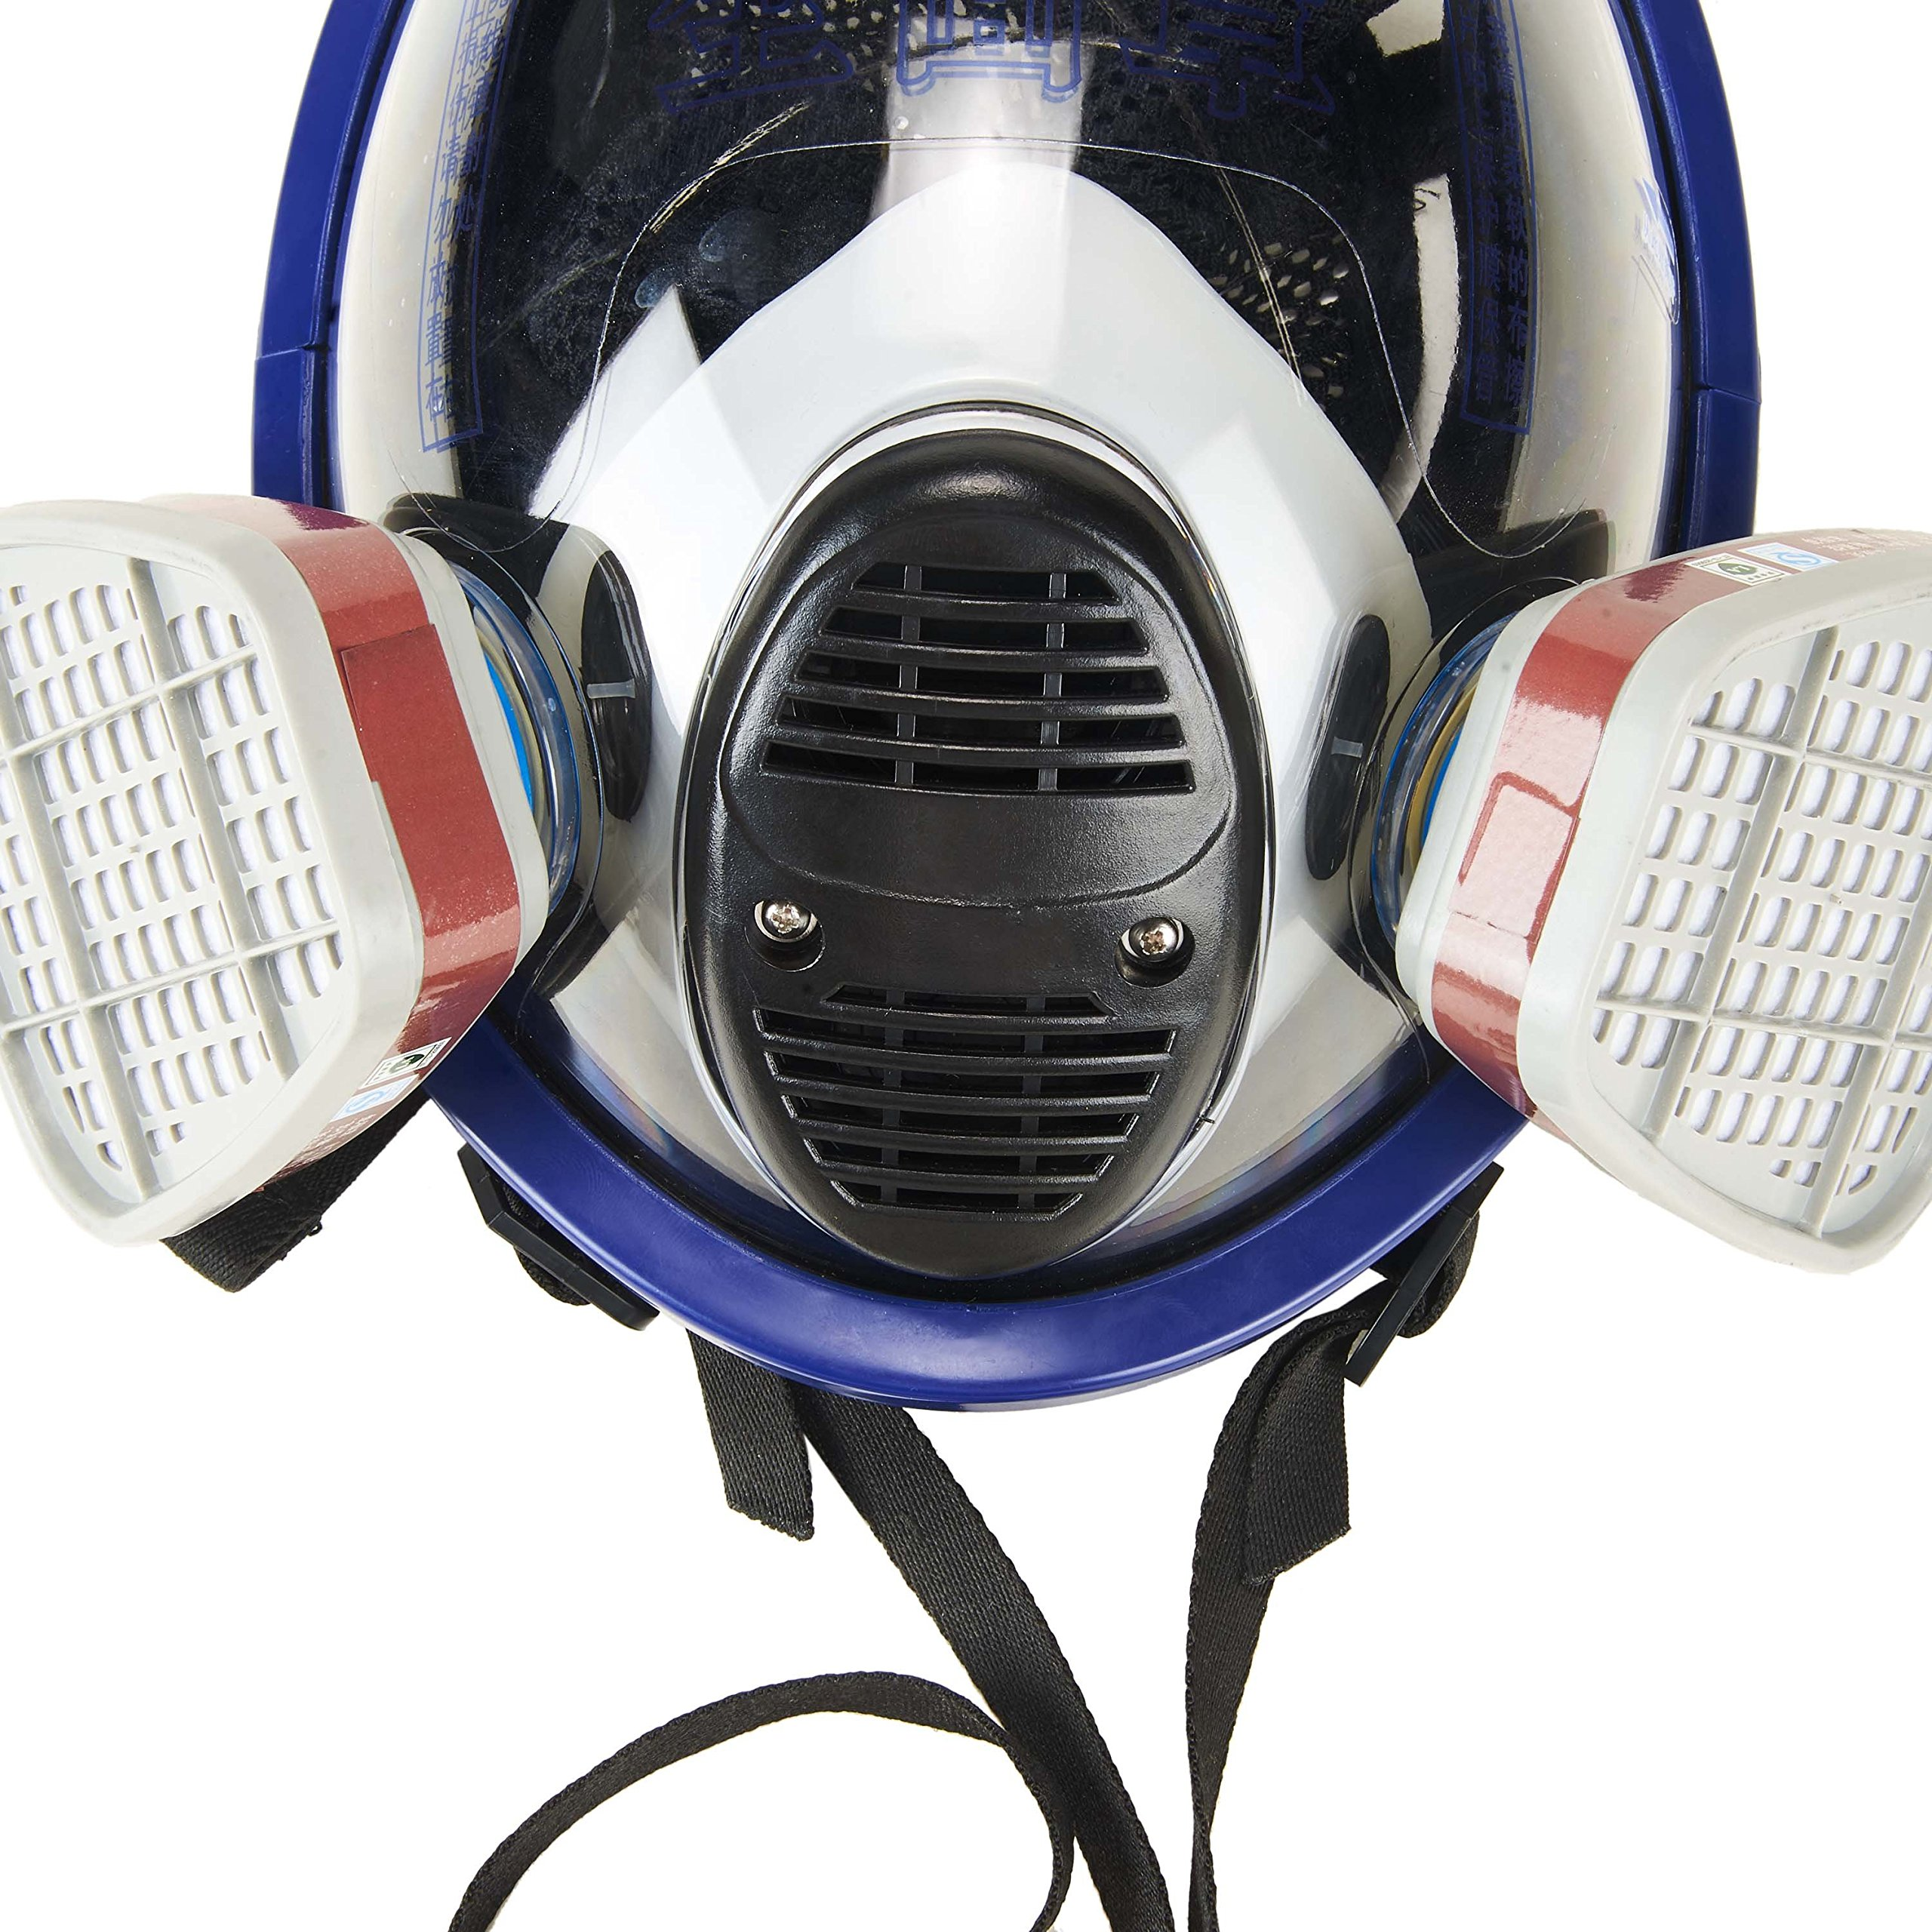 Holulo Organic Vapor Full Face Respirator With Visor Protection For Paint, chemicals, polish welding protection by Holulo (Image #5)